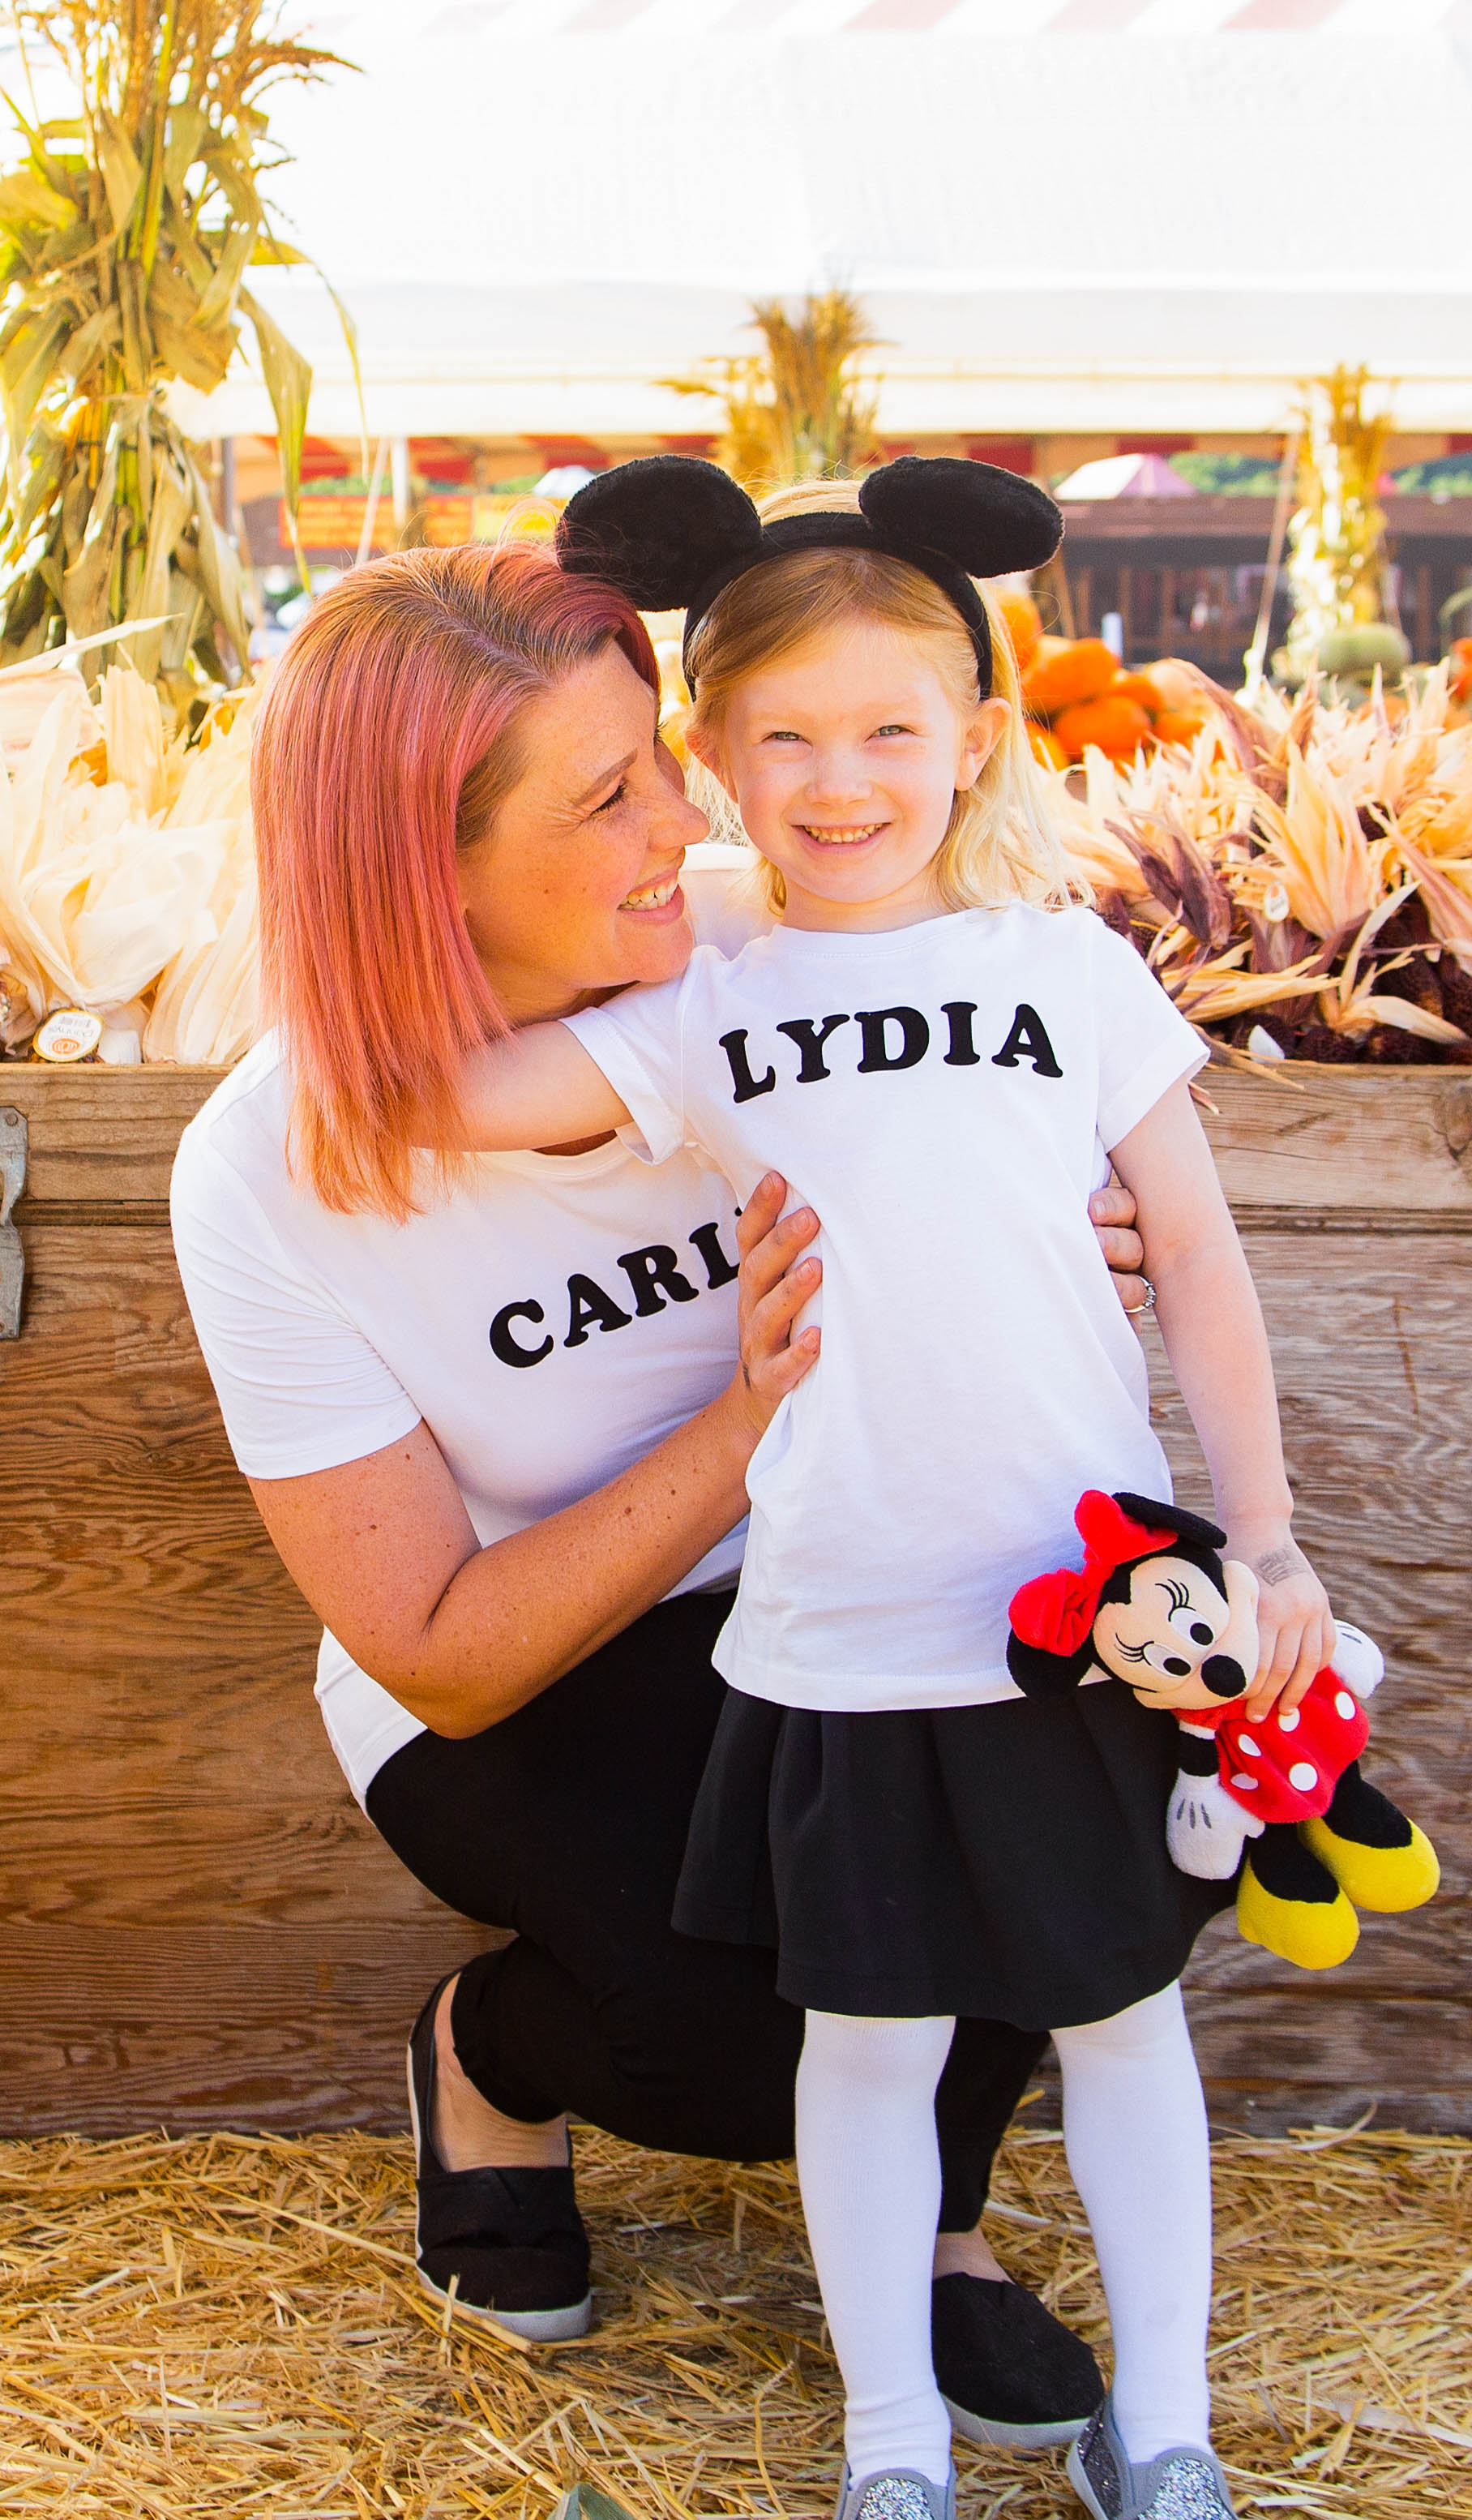 This family halloween costumes diy is PERFECT if you're on the hunt for disney halloween costumes. It takes under 5 minutes to make and who doesn't love a good mouseketeer costume?